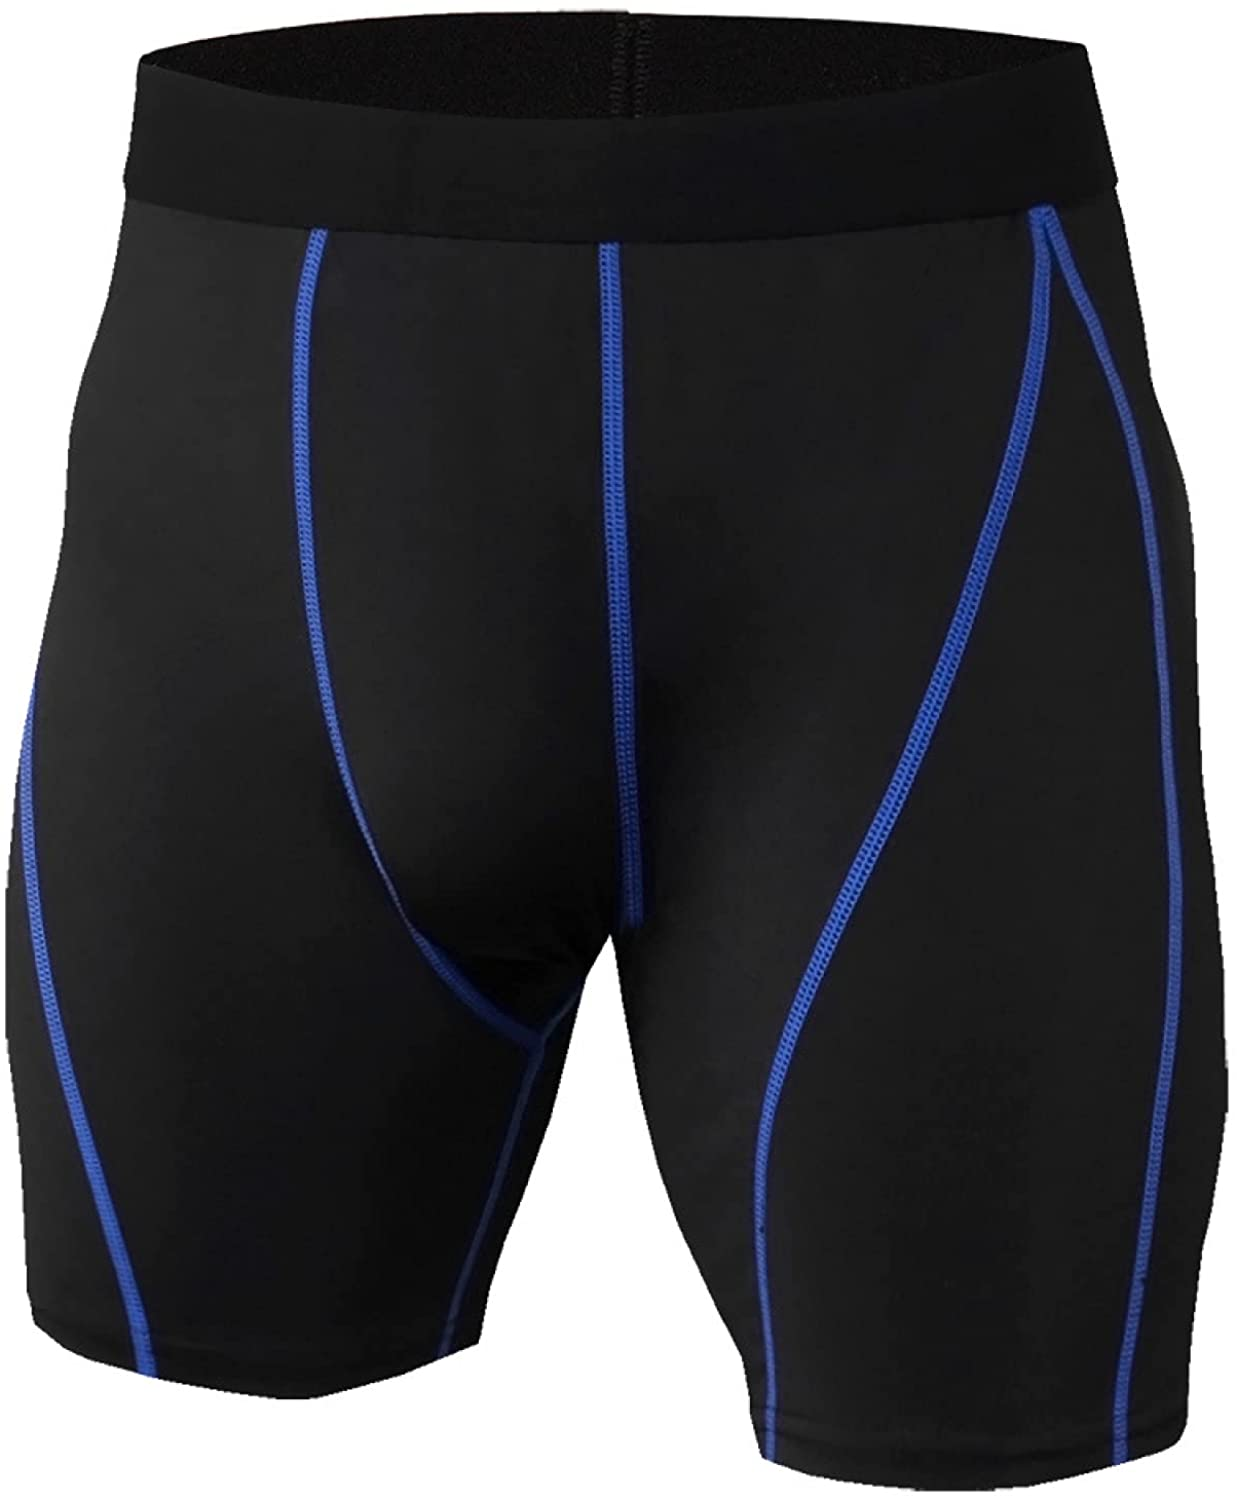 Men's Quick Dry Shorts Summer Mid Waisted Fashion Stitching Breathable